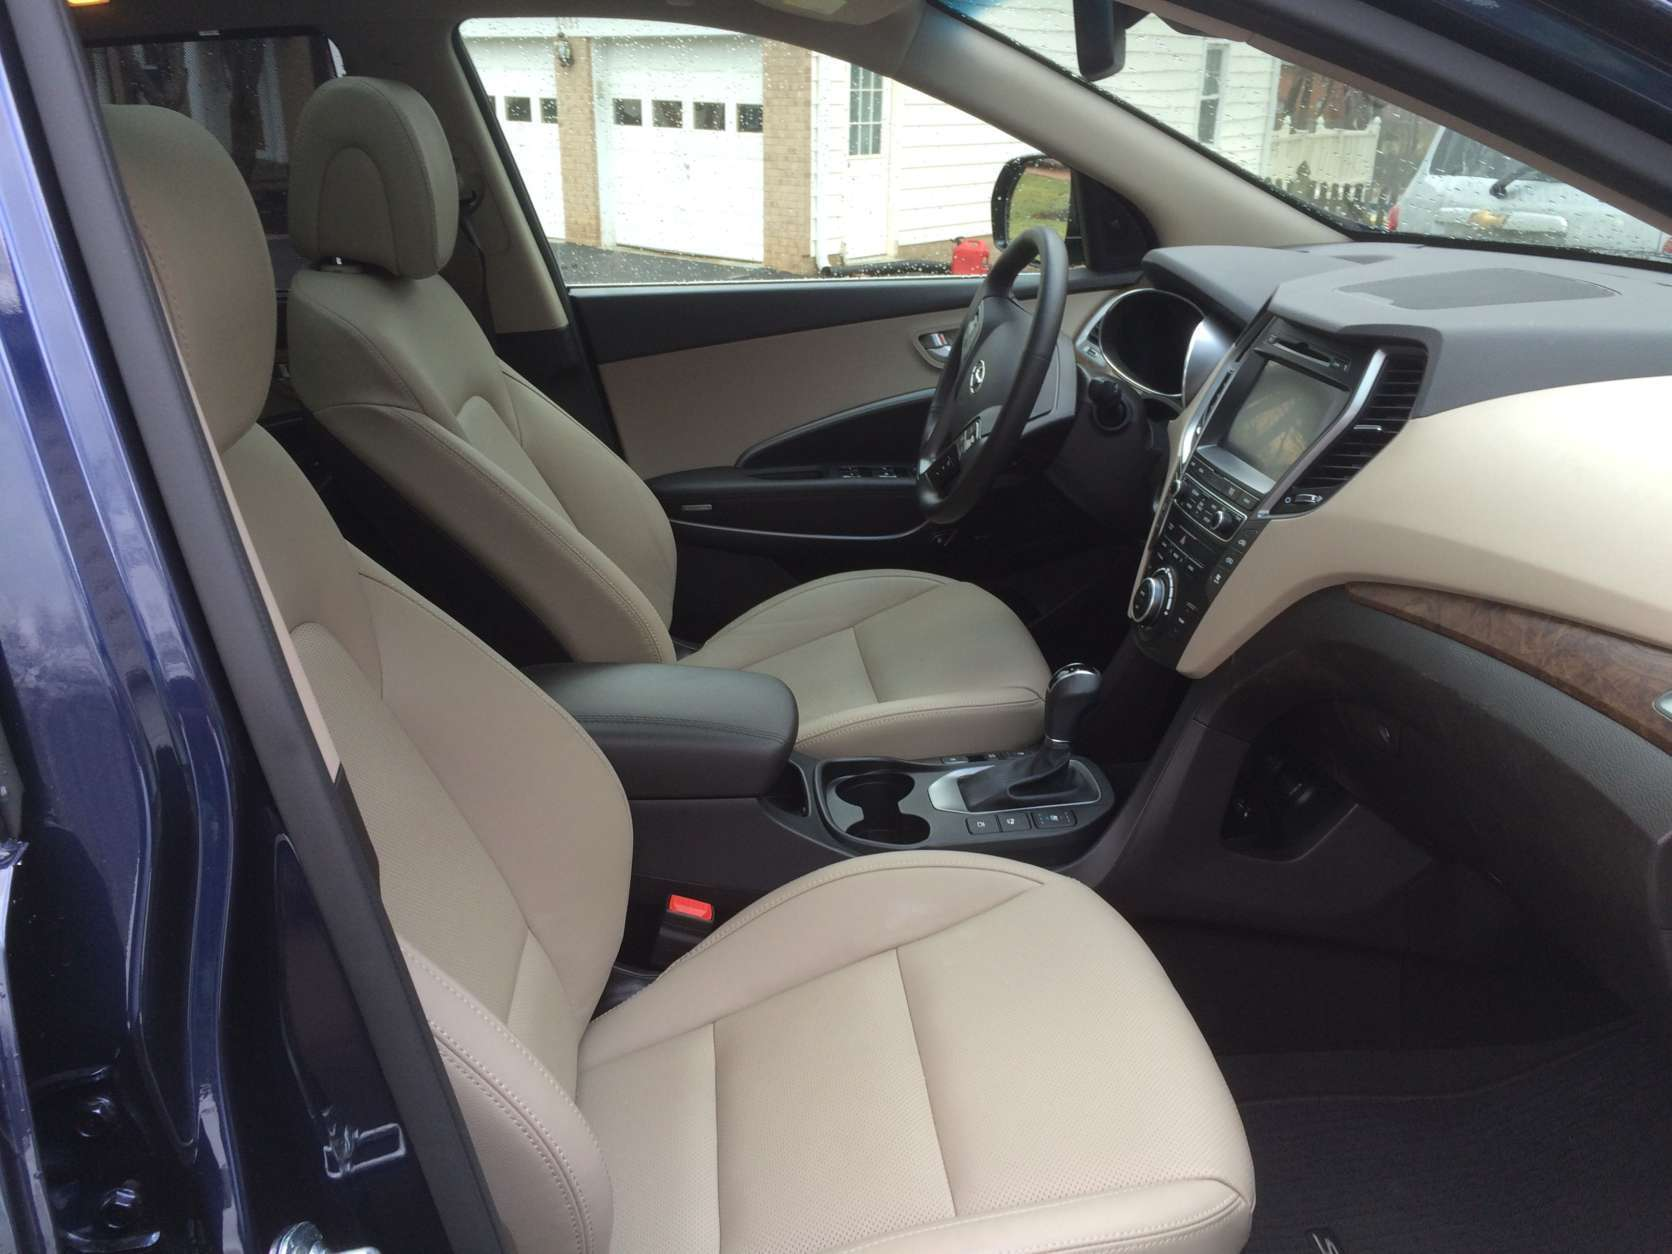 The leather seats in the front are heated, ventilated and offer good comfort. (WTOP/Mike Parris)